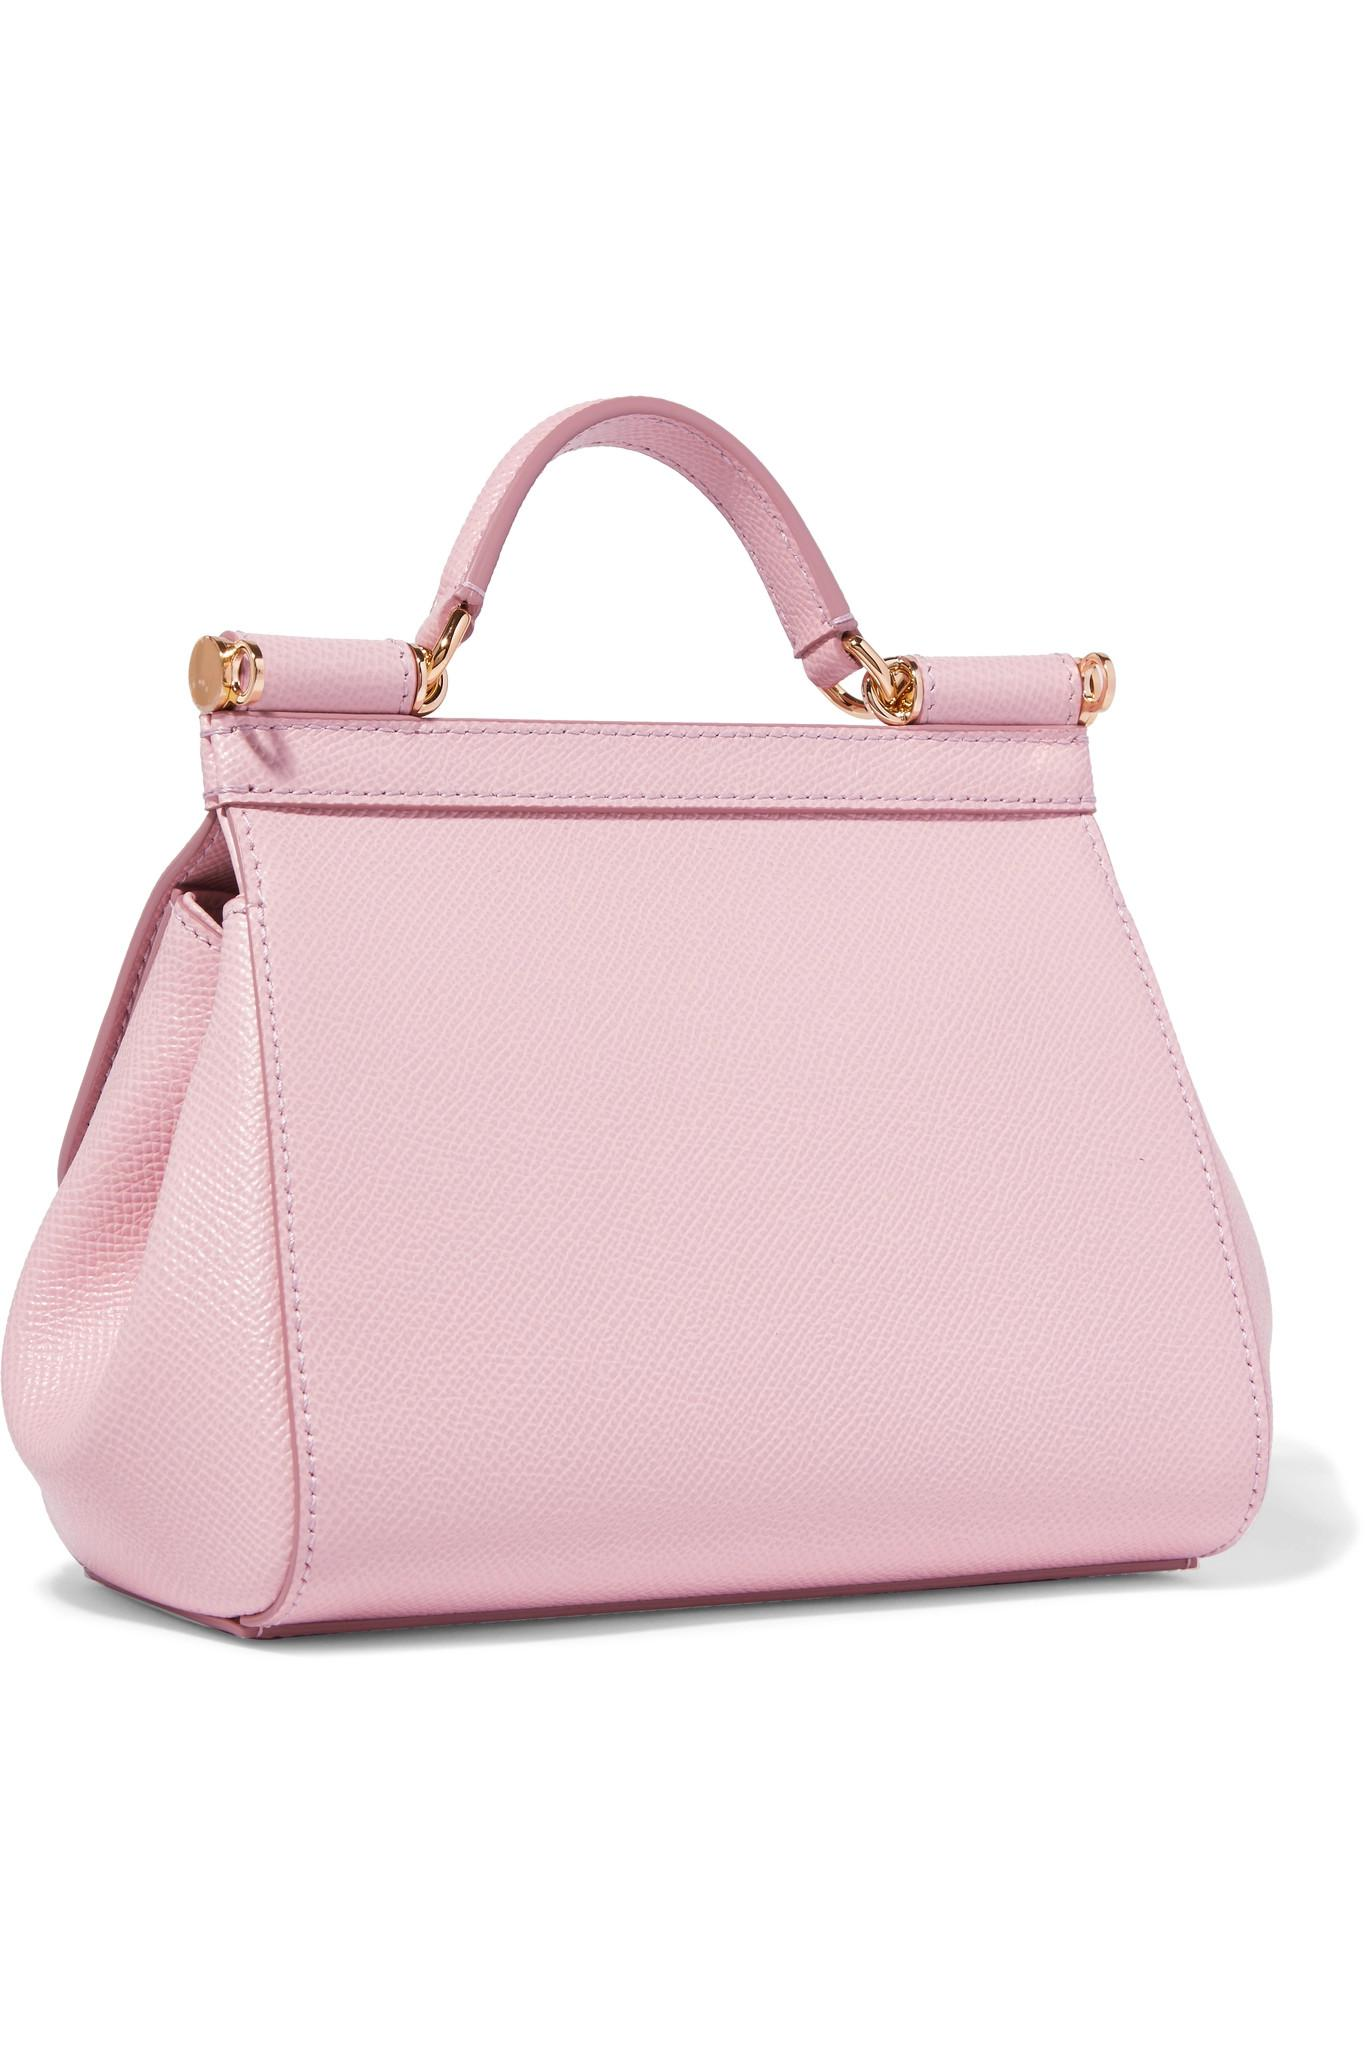 Lyst - Dolce   Gabbana Sicily Micro Textured-leather Tote in Pink ae1a66bd7fe43